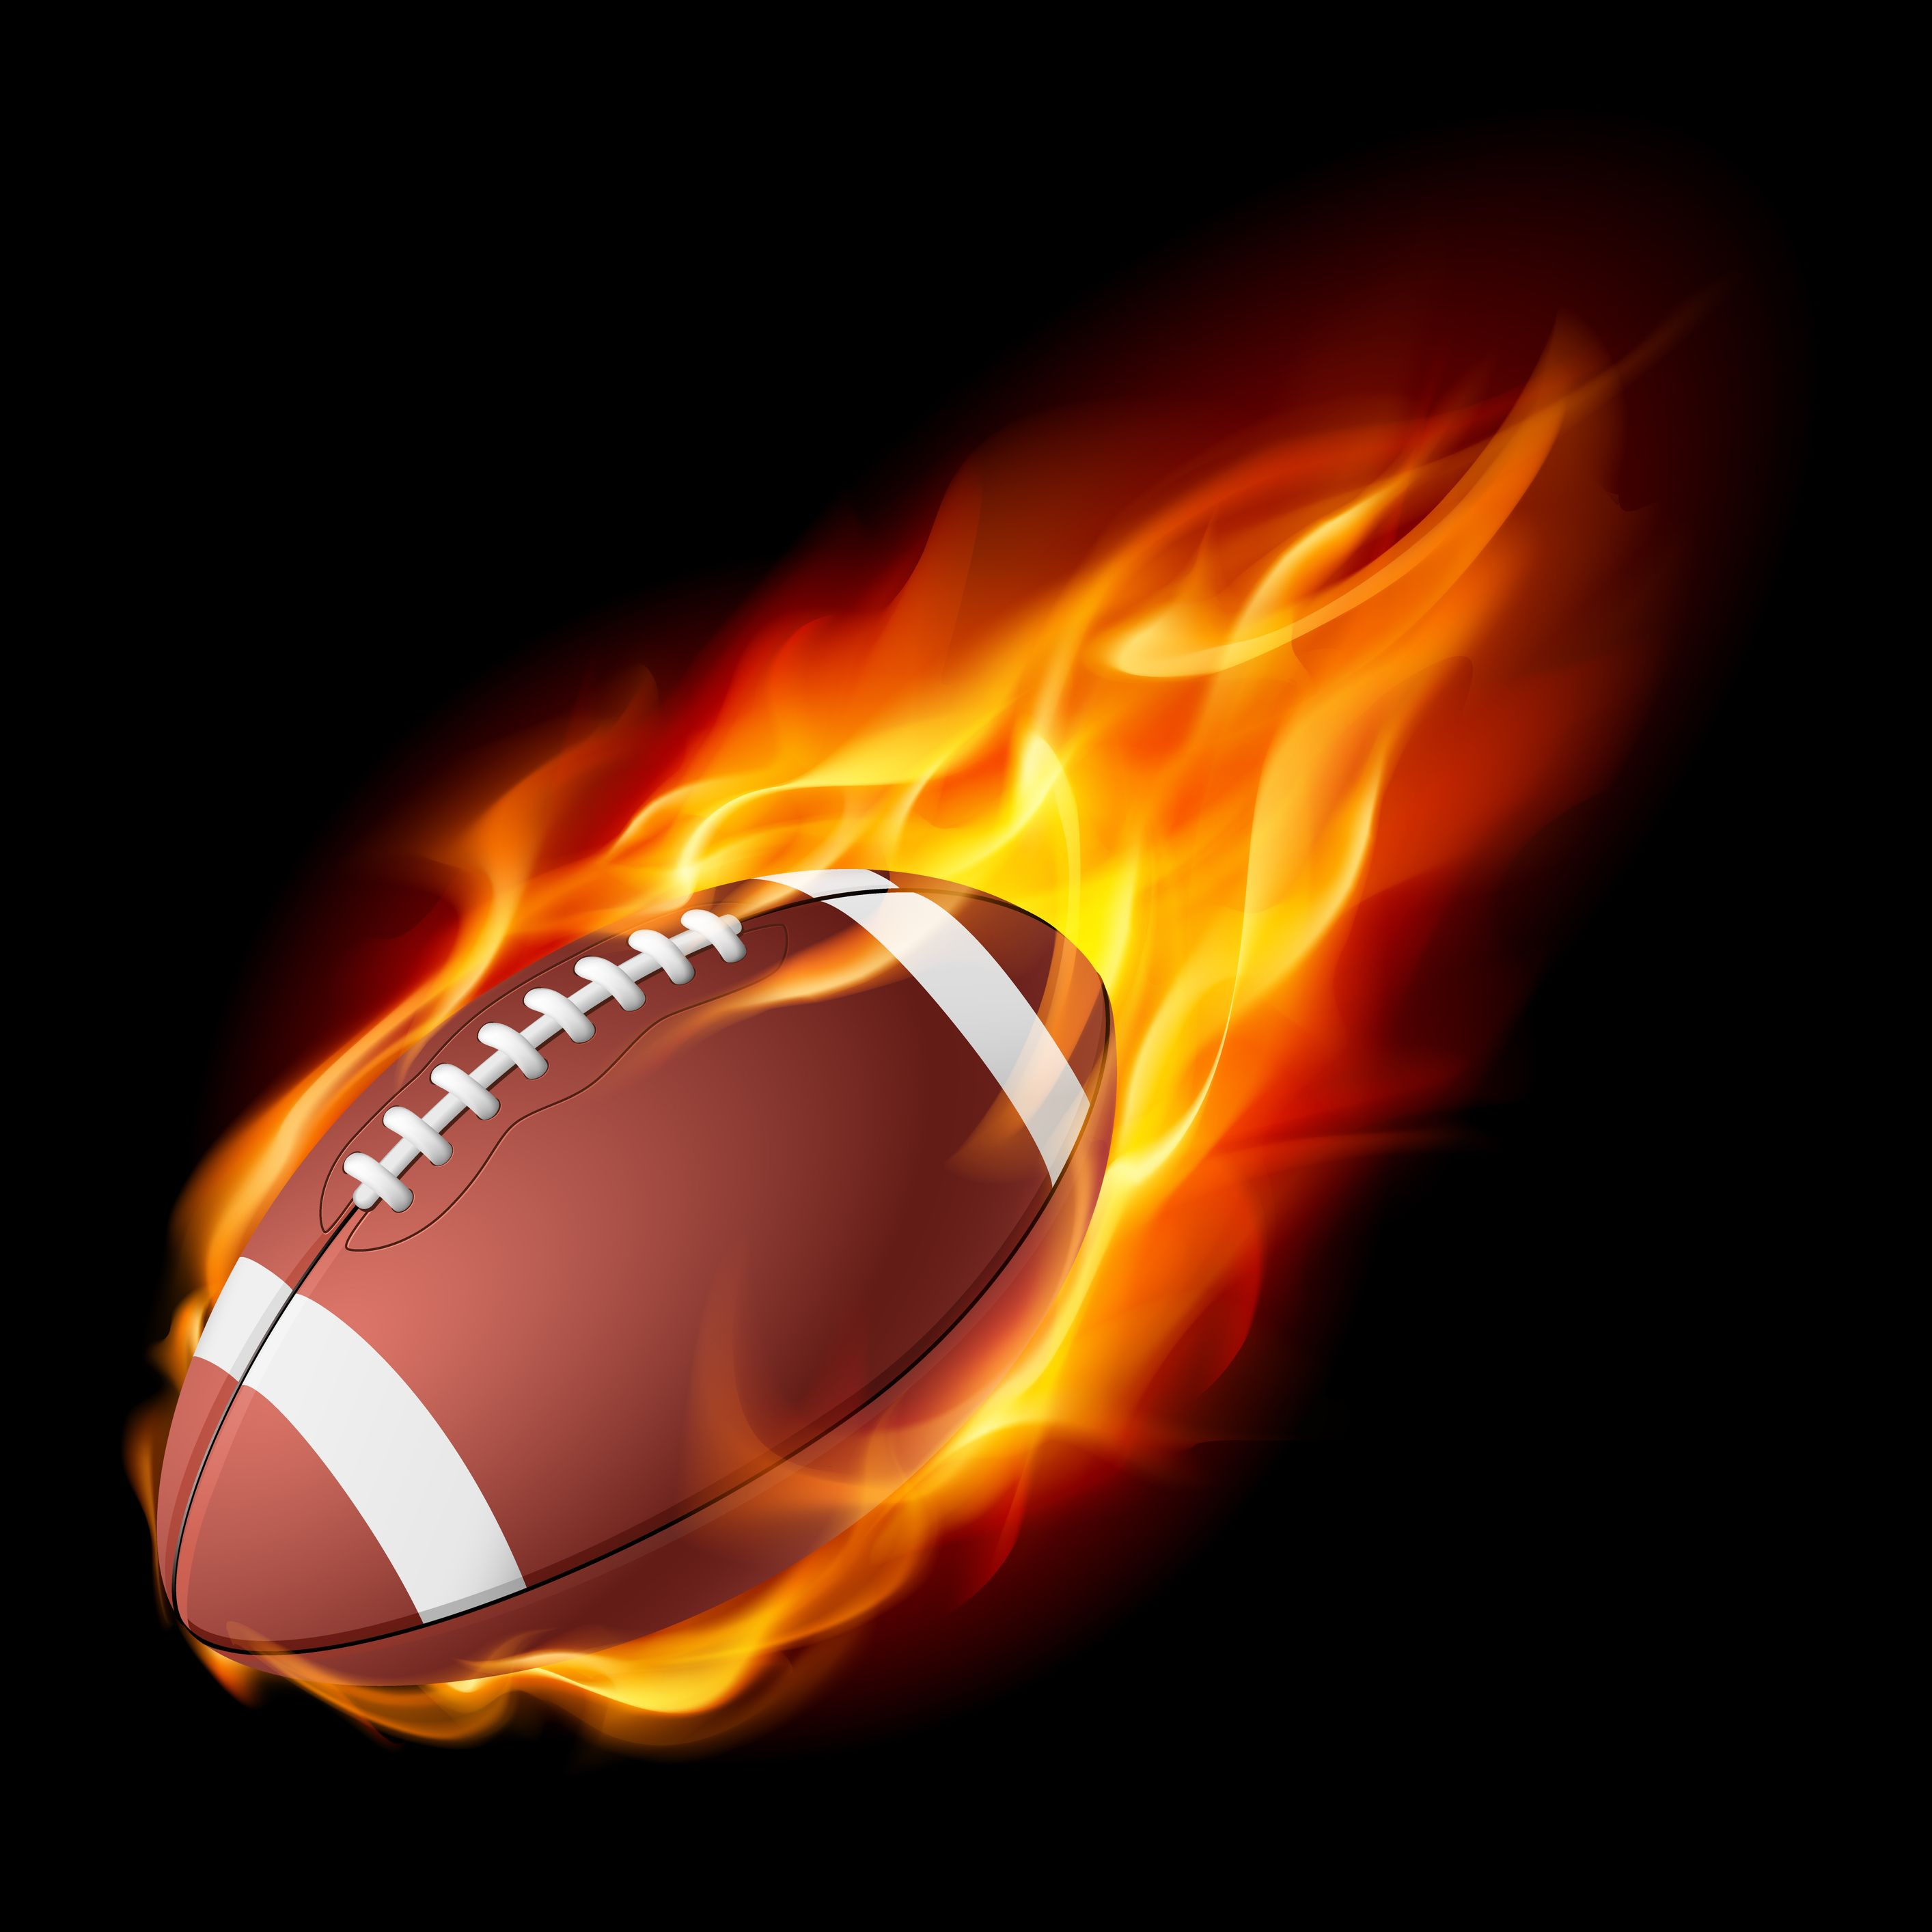 Realistic American Football In The Fire. Illustration On